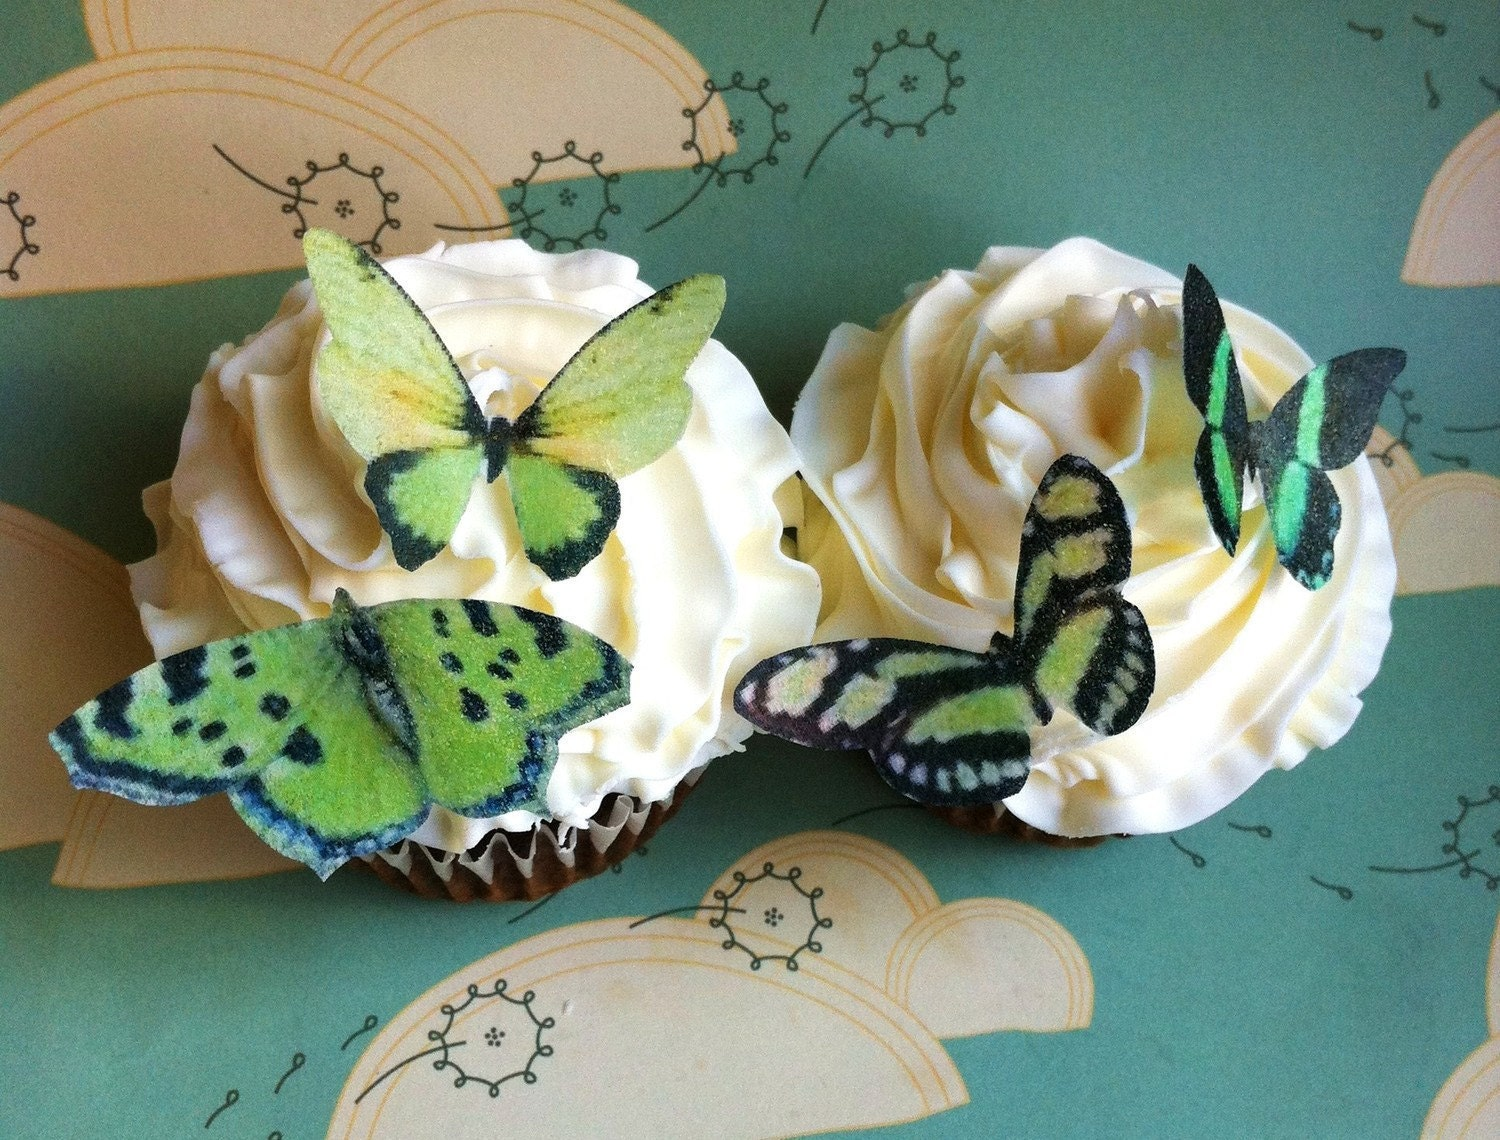 EDIBLE Butterflies The Original Small Greens Cake